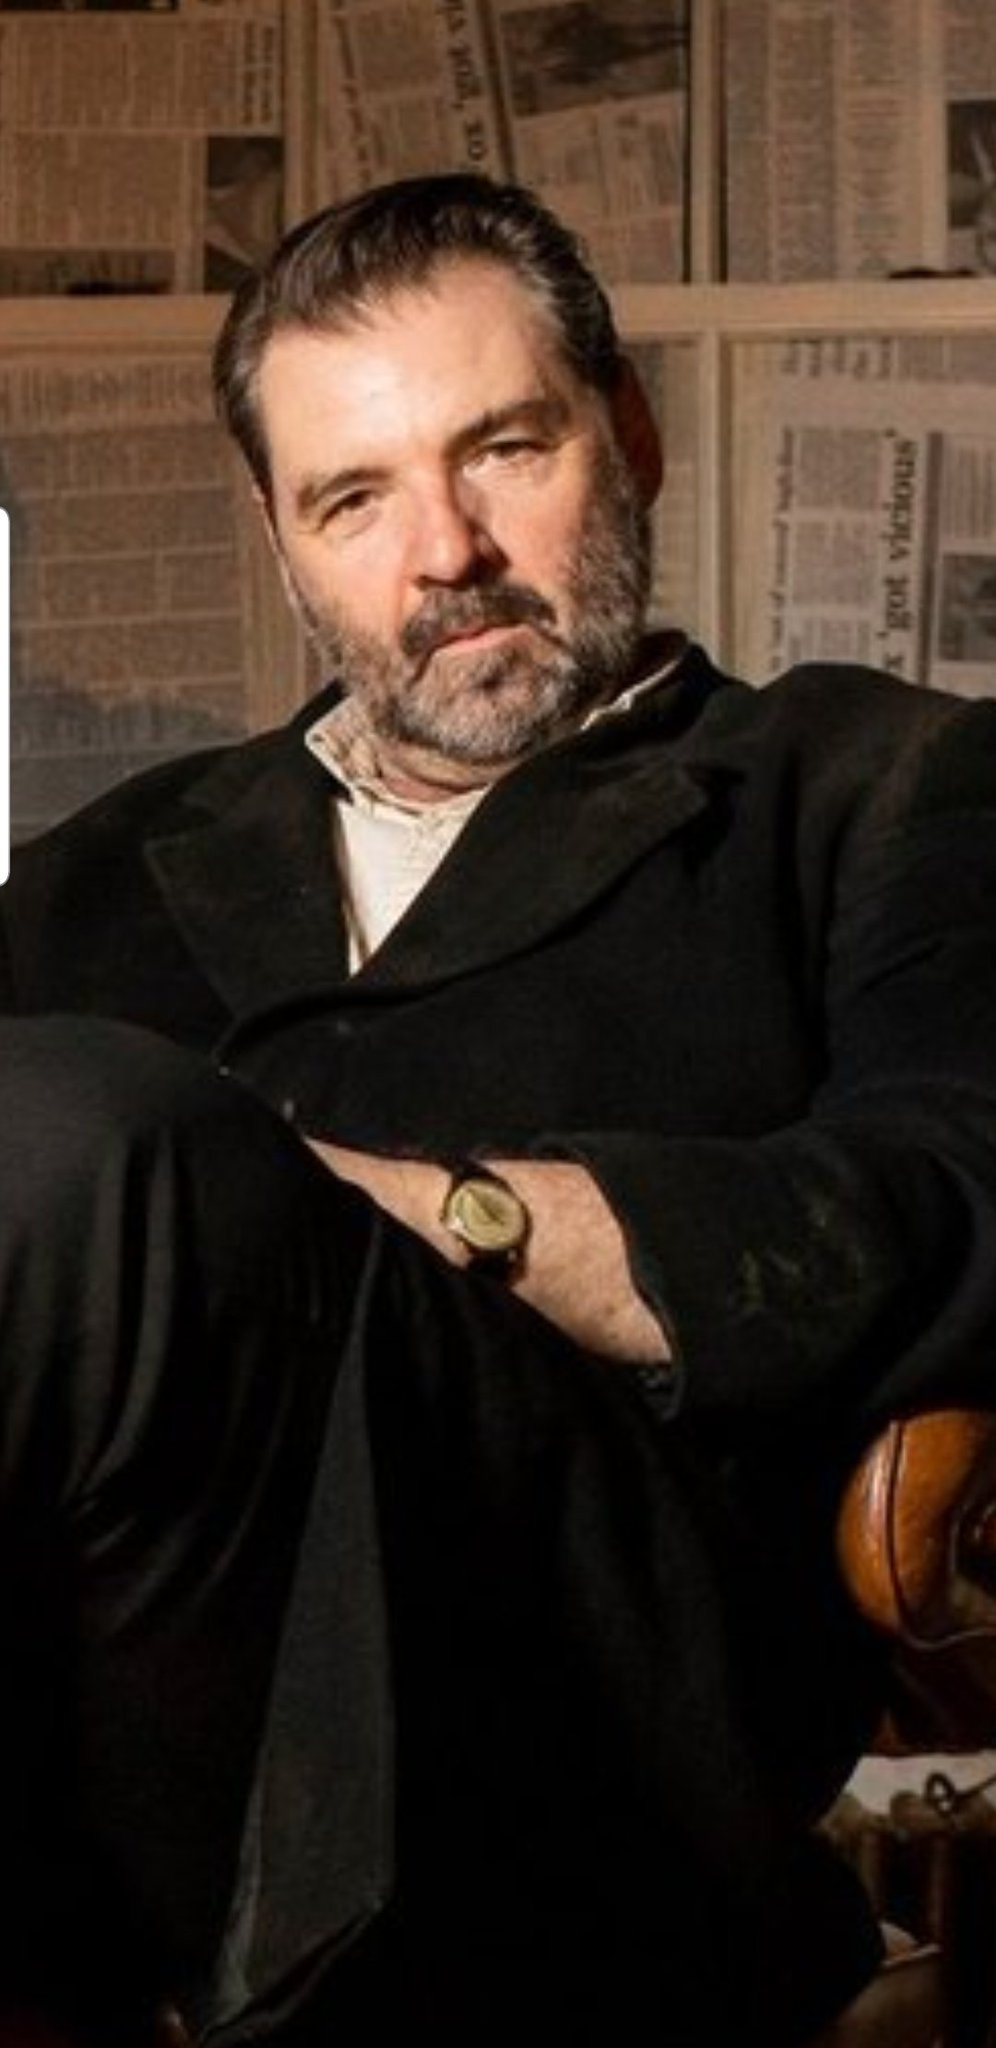 Happy Birthday Brendan Coyle!!!